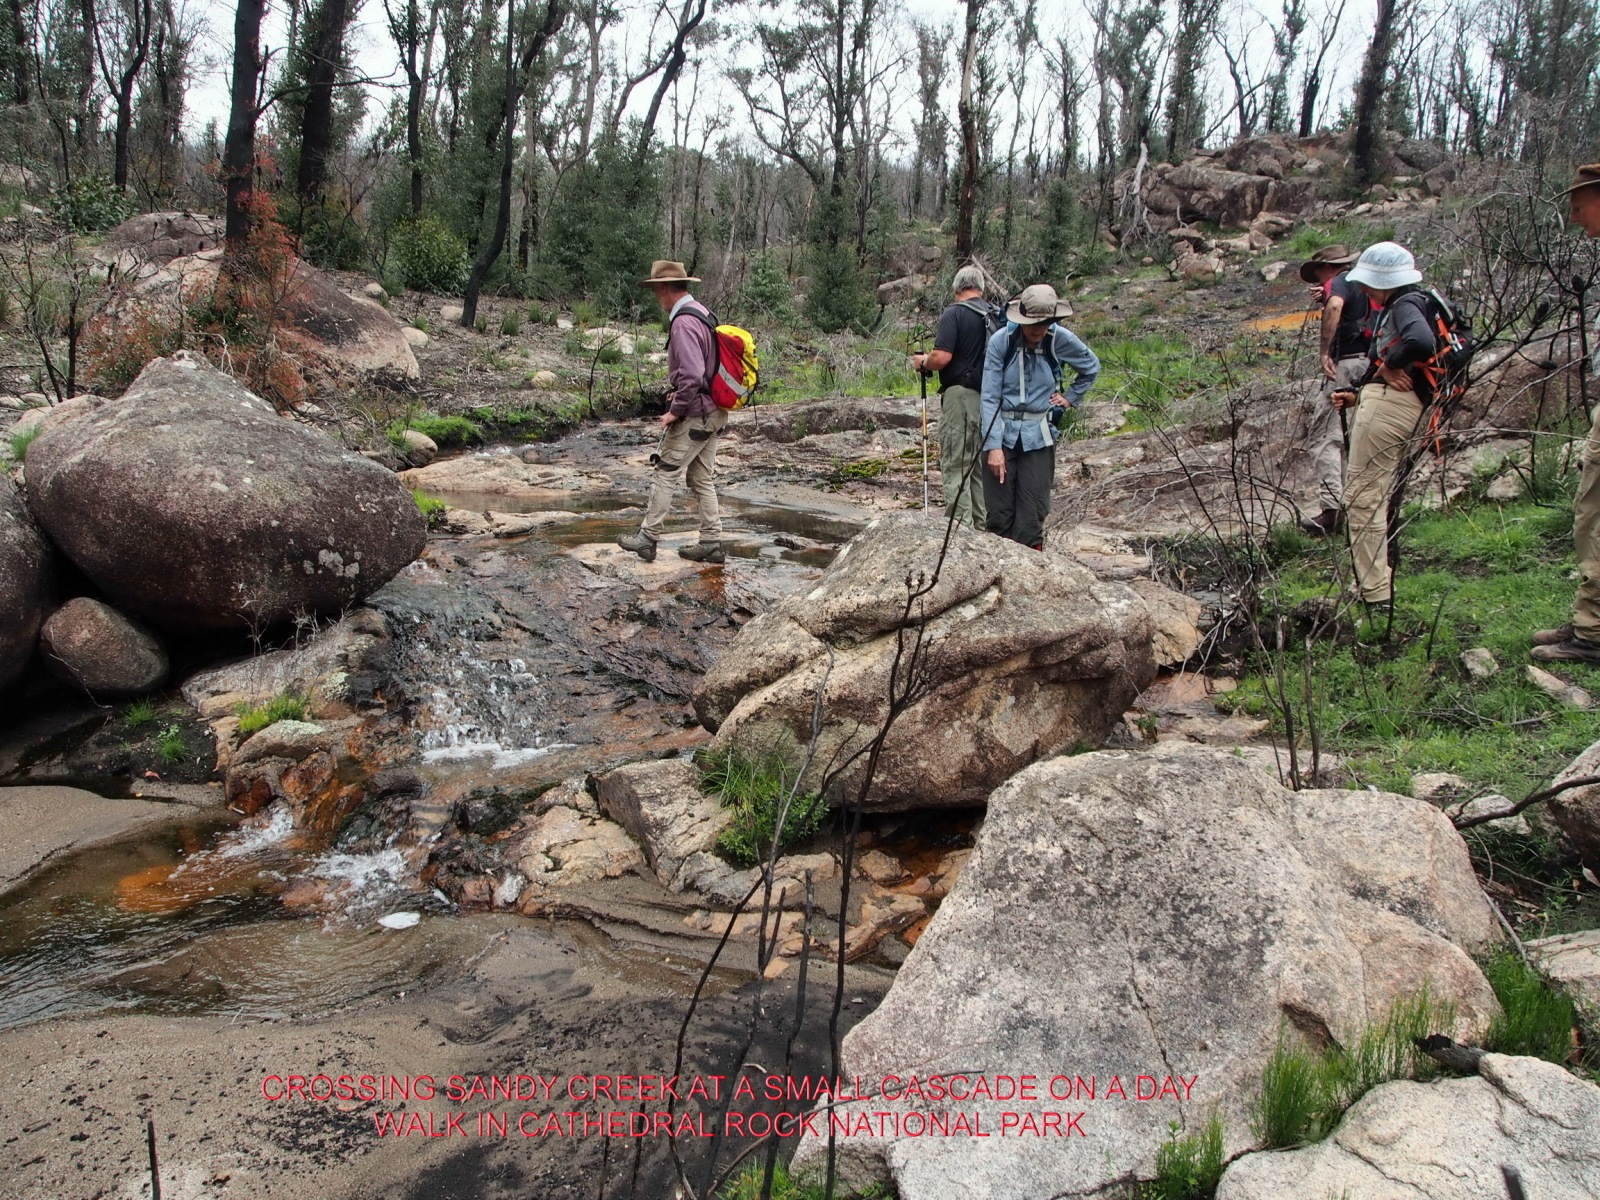 CROSSING SANDY CREEK AT A SMALL CASCADE ON A DAY WALK IN CATHEDRAL ROCK NATIONAL PARK